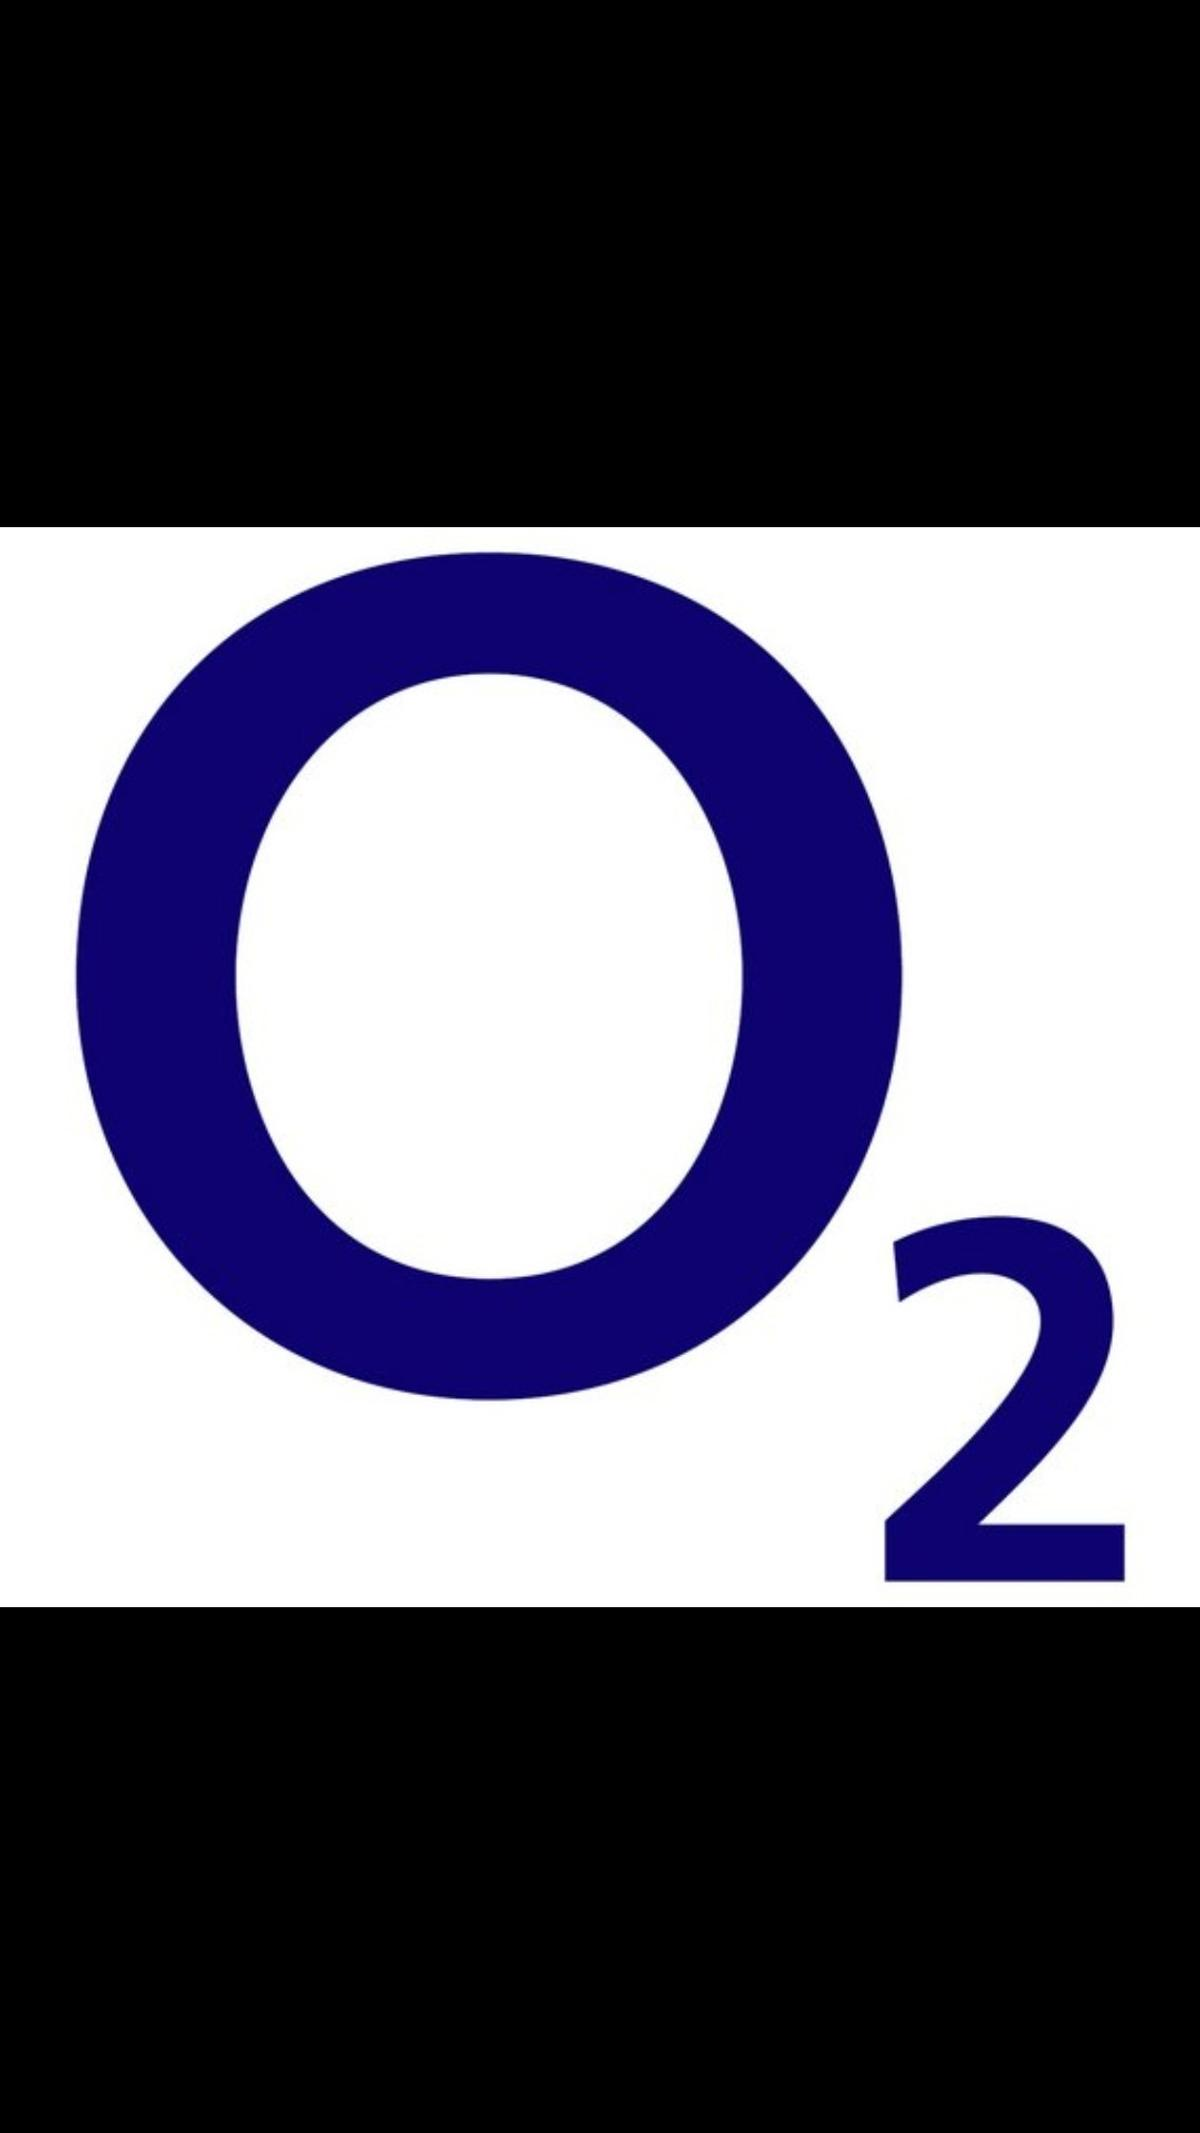 Buy psn credit with o2 vouchers sony ps4 in WF13 Dewsbury for £1 00